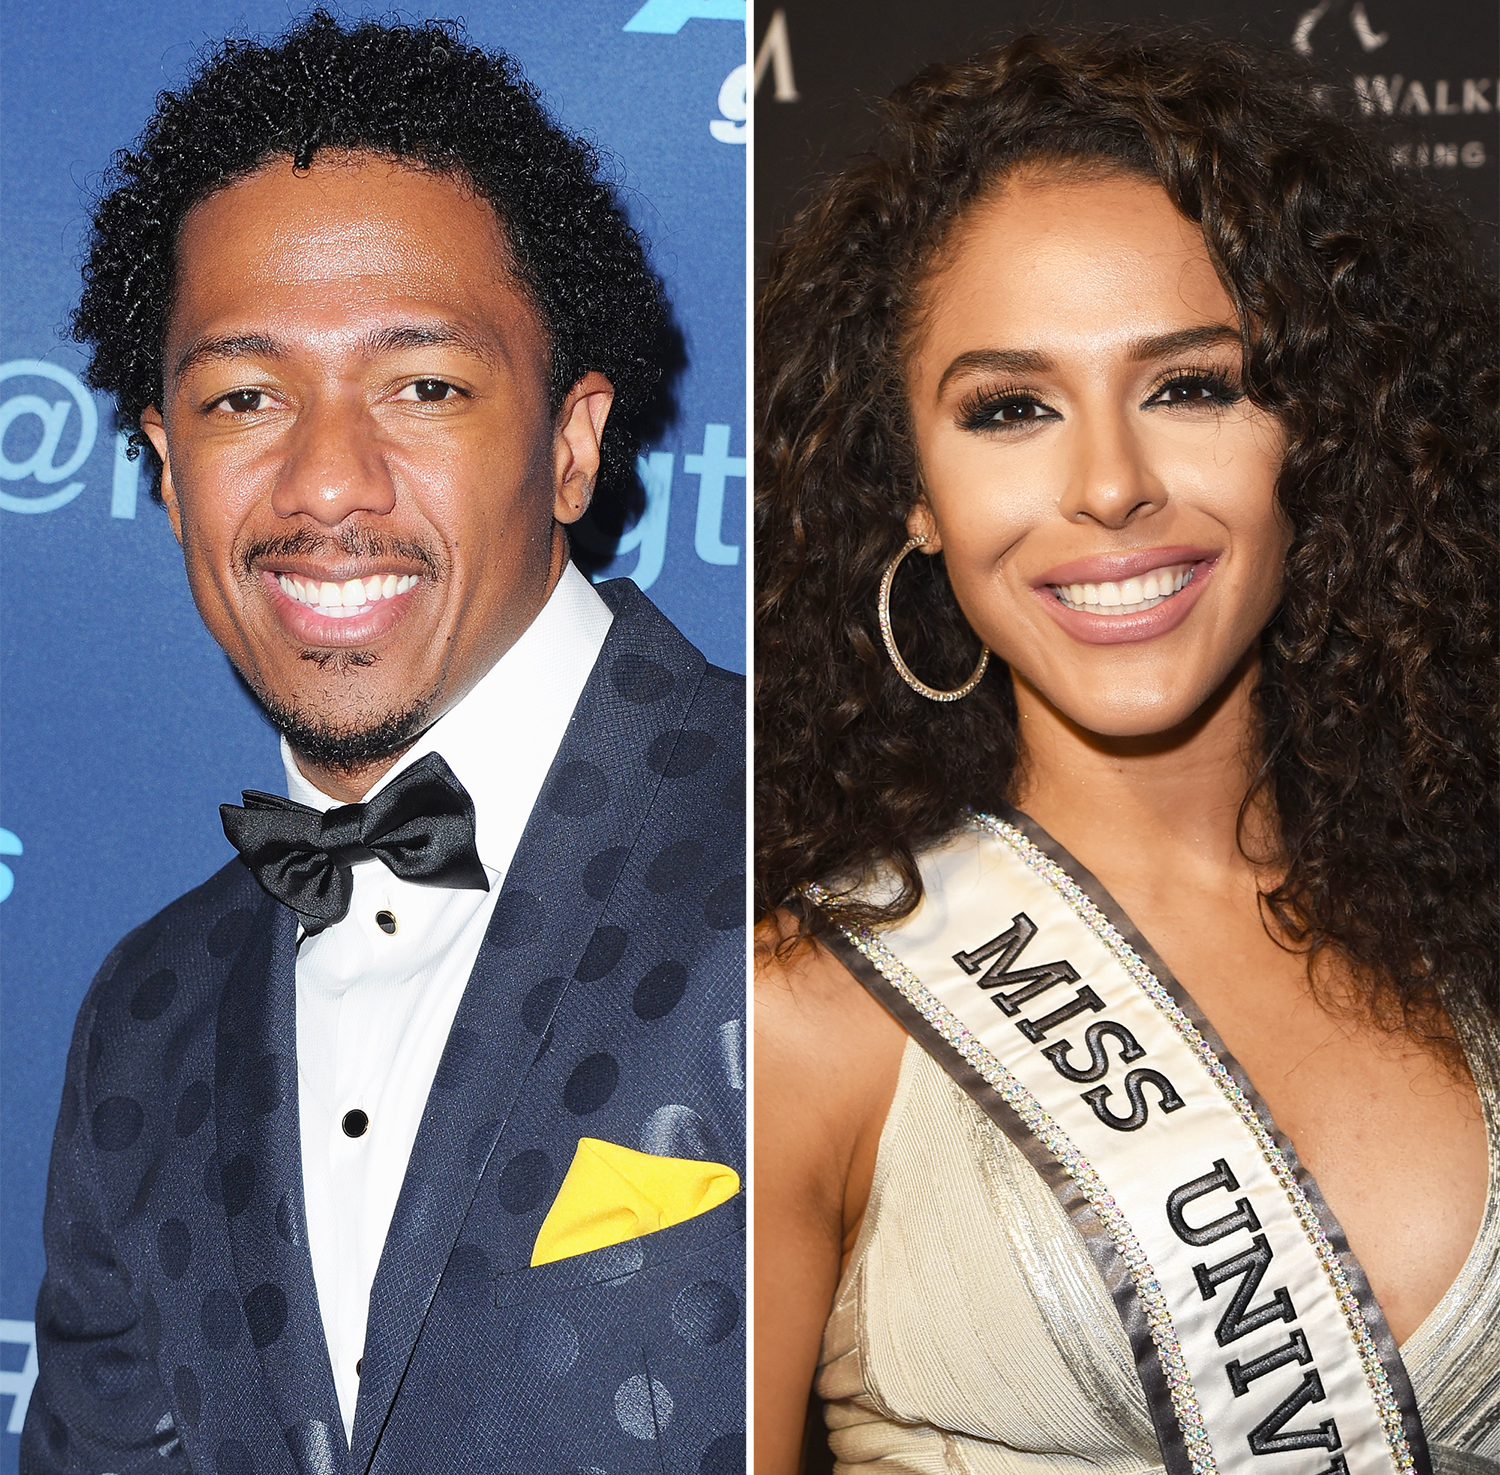 Cannon girlfriends nick Nick Cannon's